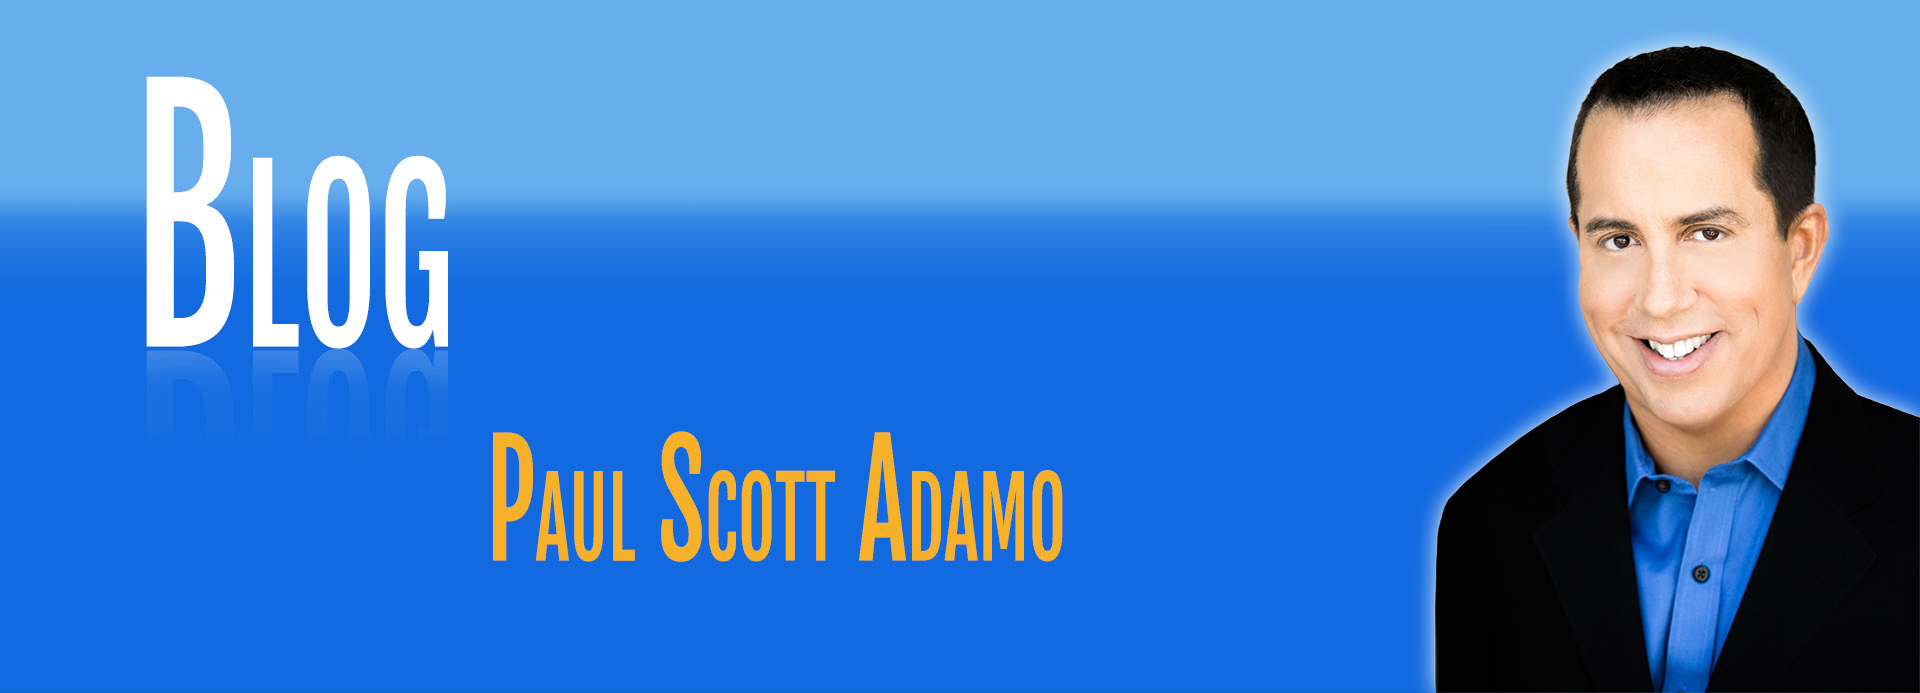 Paul Scott Adamo celebrity booker